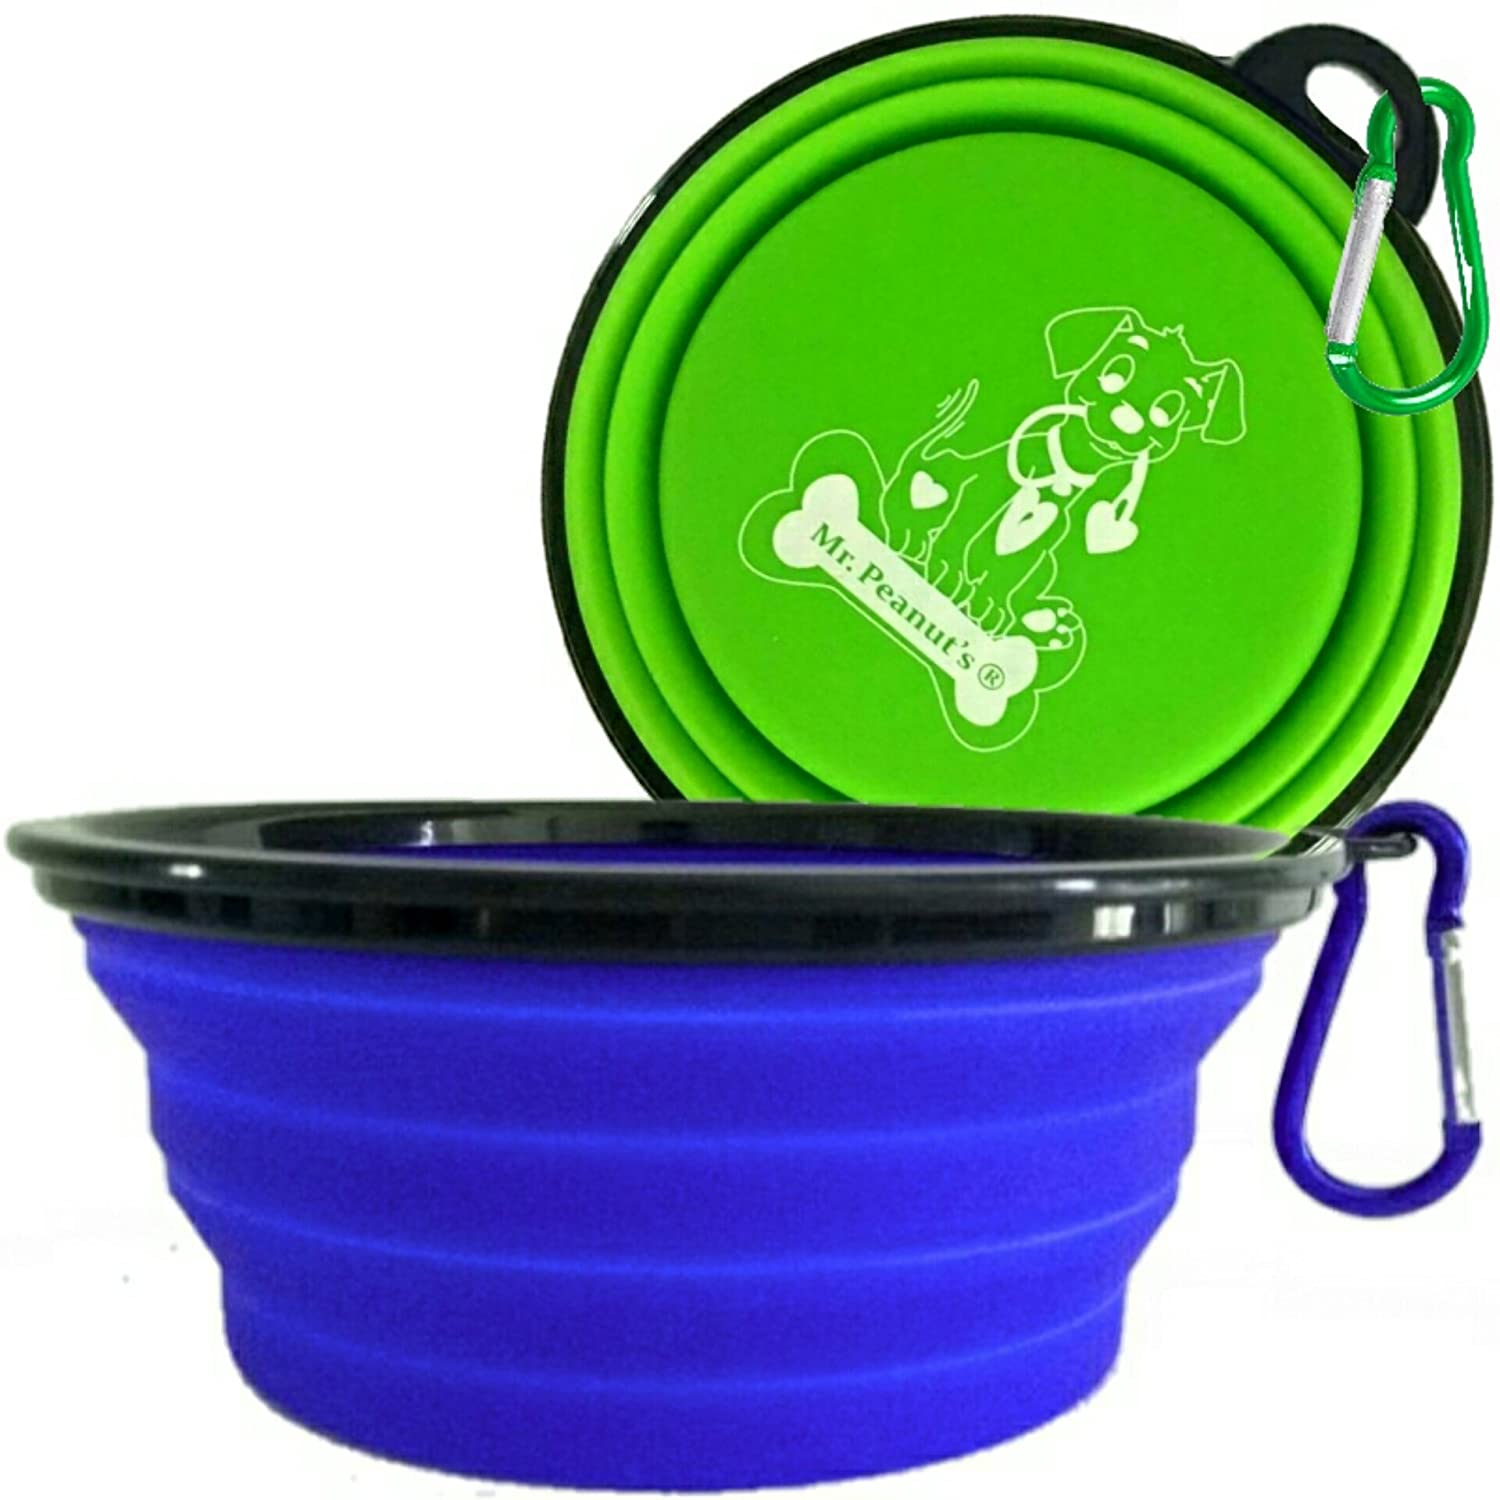 """Mr. Peanut's XL Collapsible Dog Bowls - 2 Pak - Extra Large 34oz, 7"""" Diameter for Large Dogs - Dishwasher Safe BPA FREE Food Grade Silicone - Portable Foldable Travel Pet Bowls for Journeys & Hikes"""